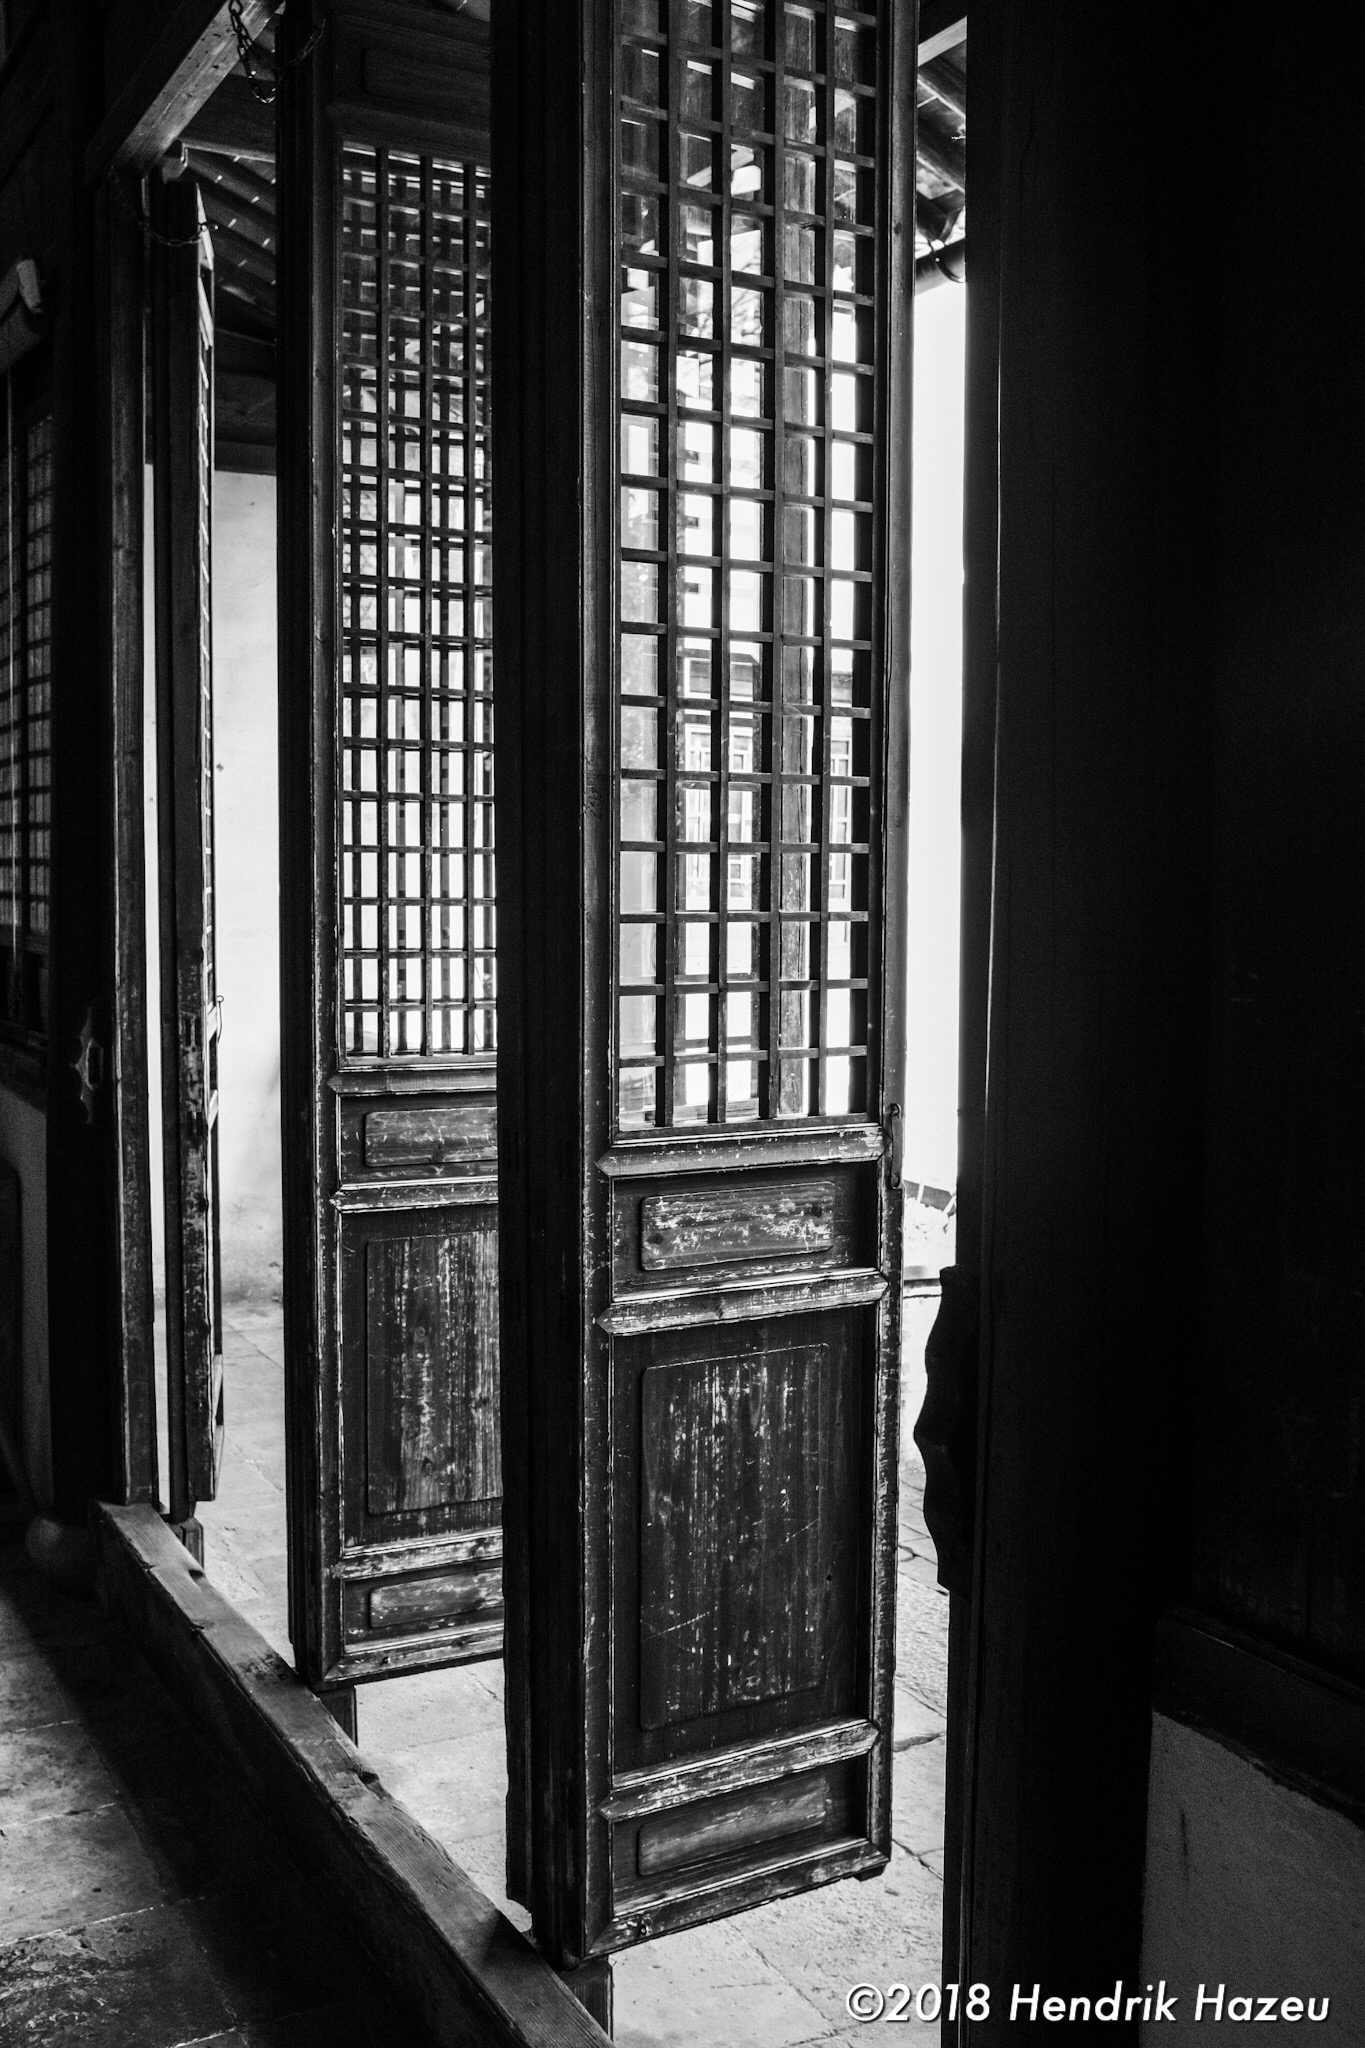 Courtyard doors, Fuji X100F, 23mm f/2 @f/5.6, 1/60sec ISO400 developed in LR CC mobile